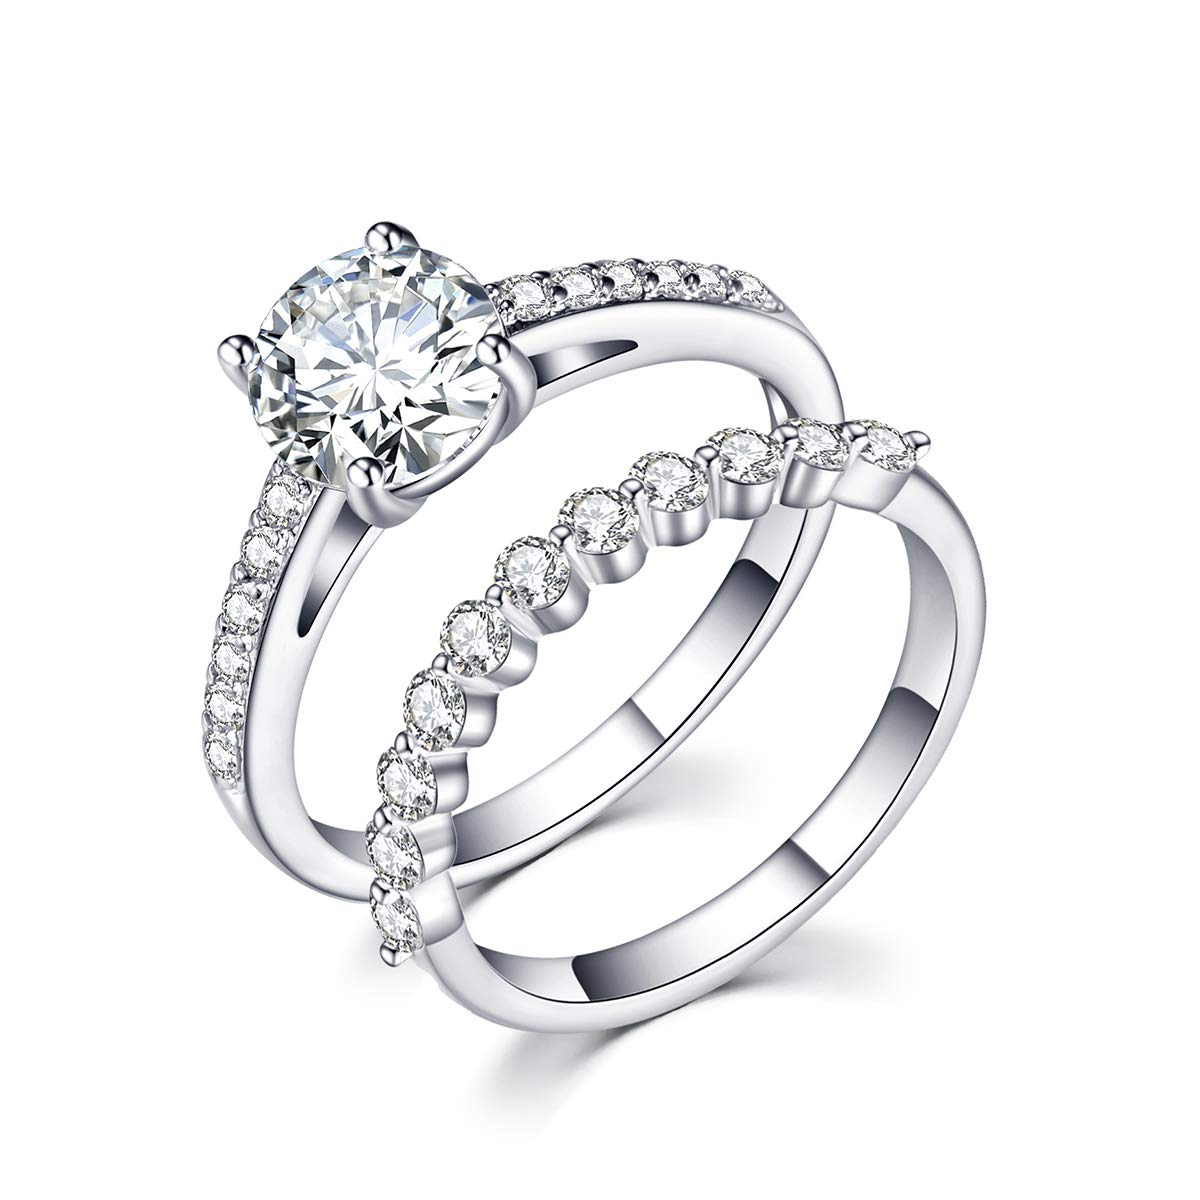 rongji jewelry Cubic Zirconia Wedding Stacking Ring - Sterling Silver Gem Grade CZ Ring Set for Women Engagement,Size8